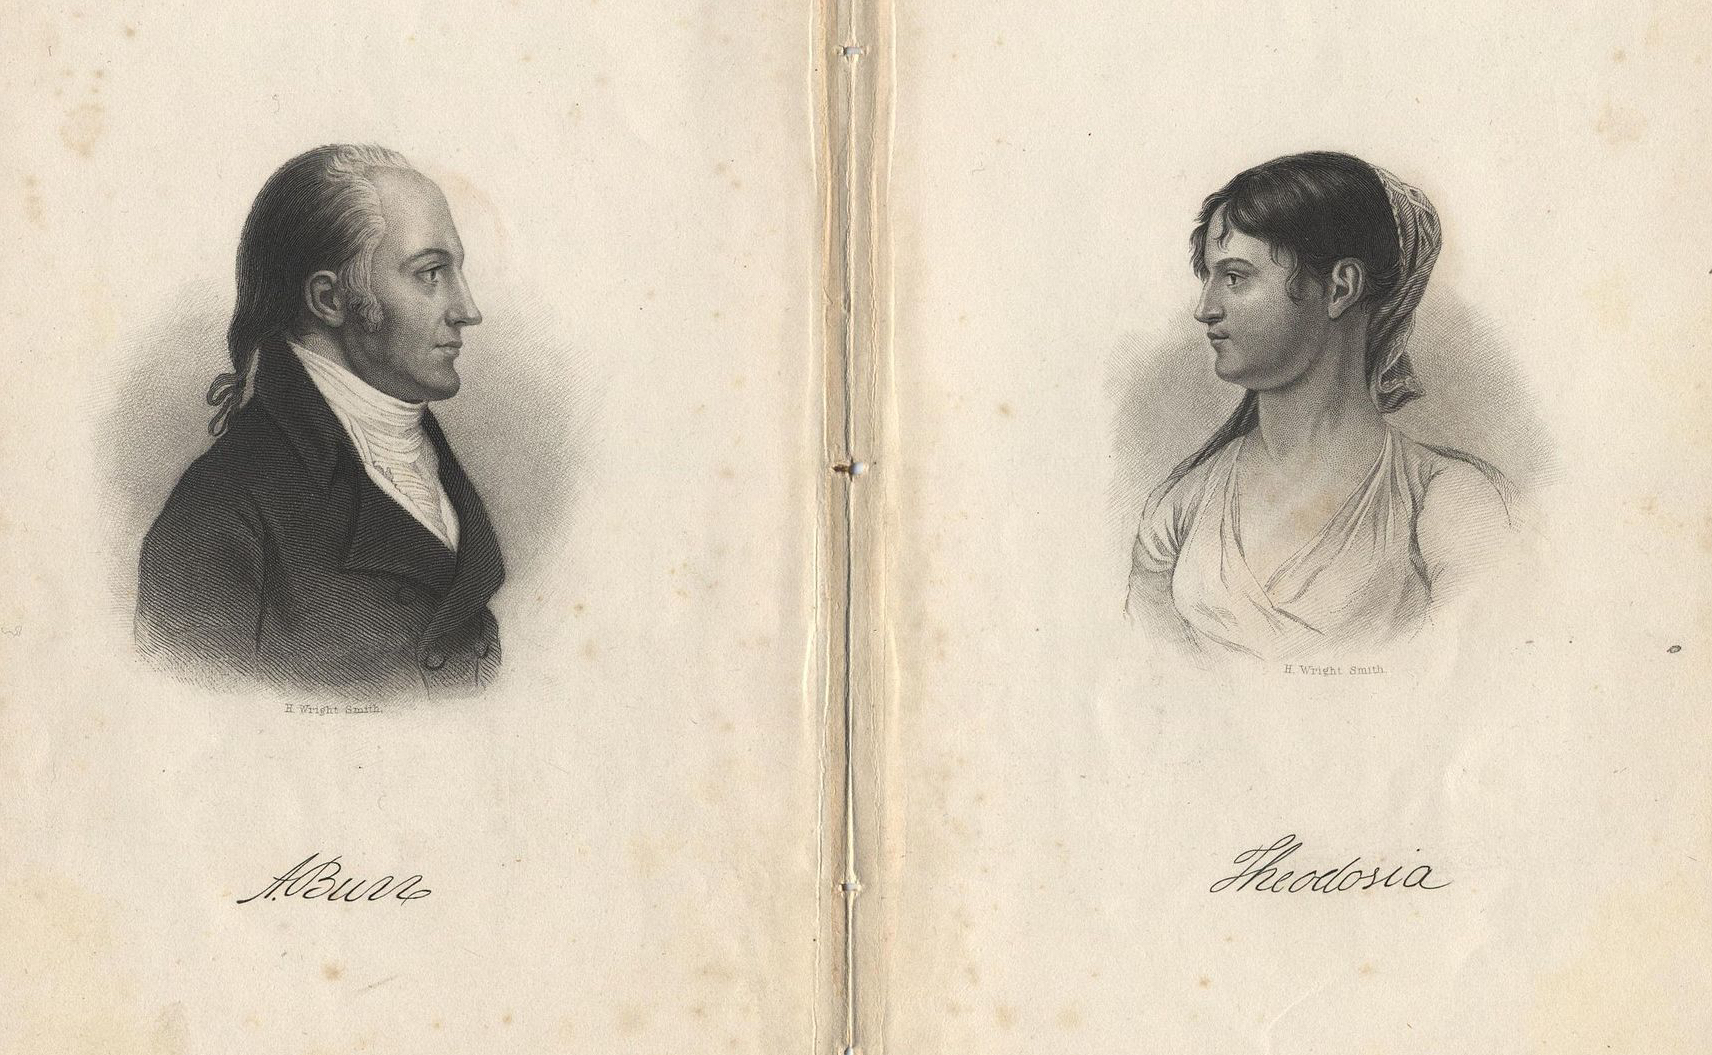 Aaron_and_Theodosia_Burr